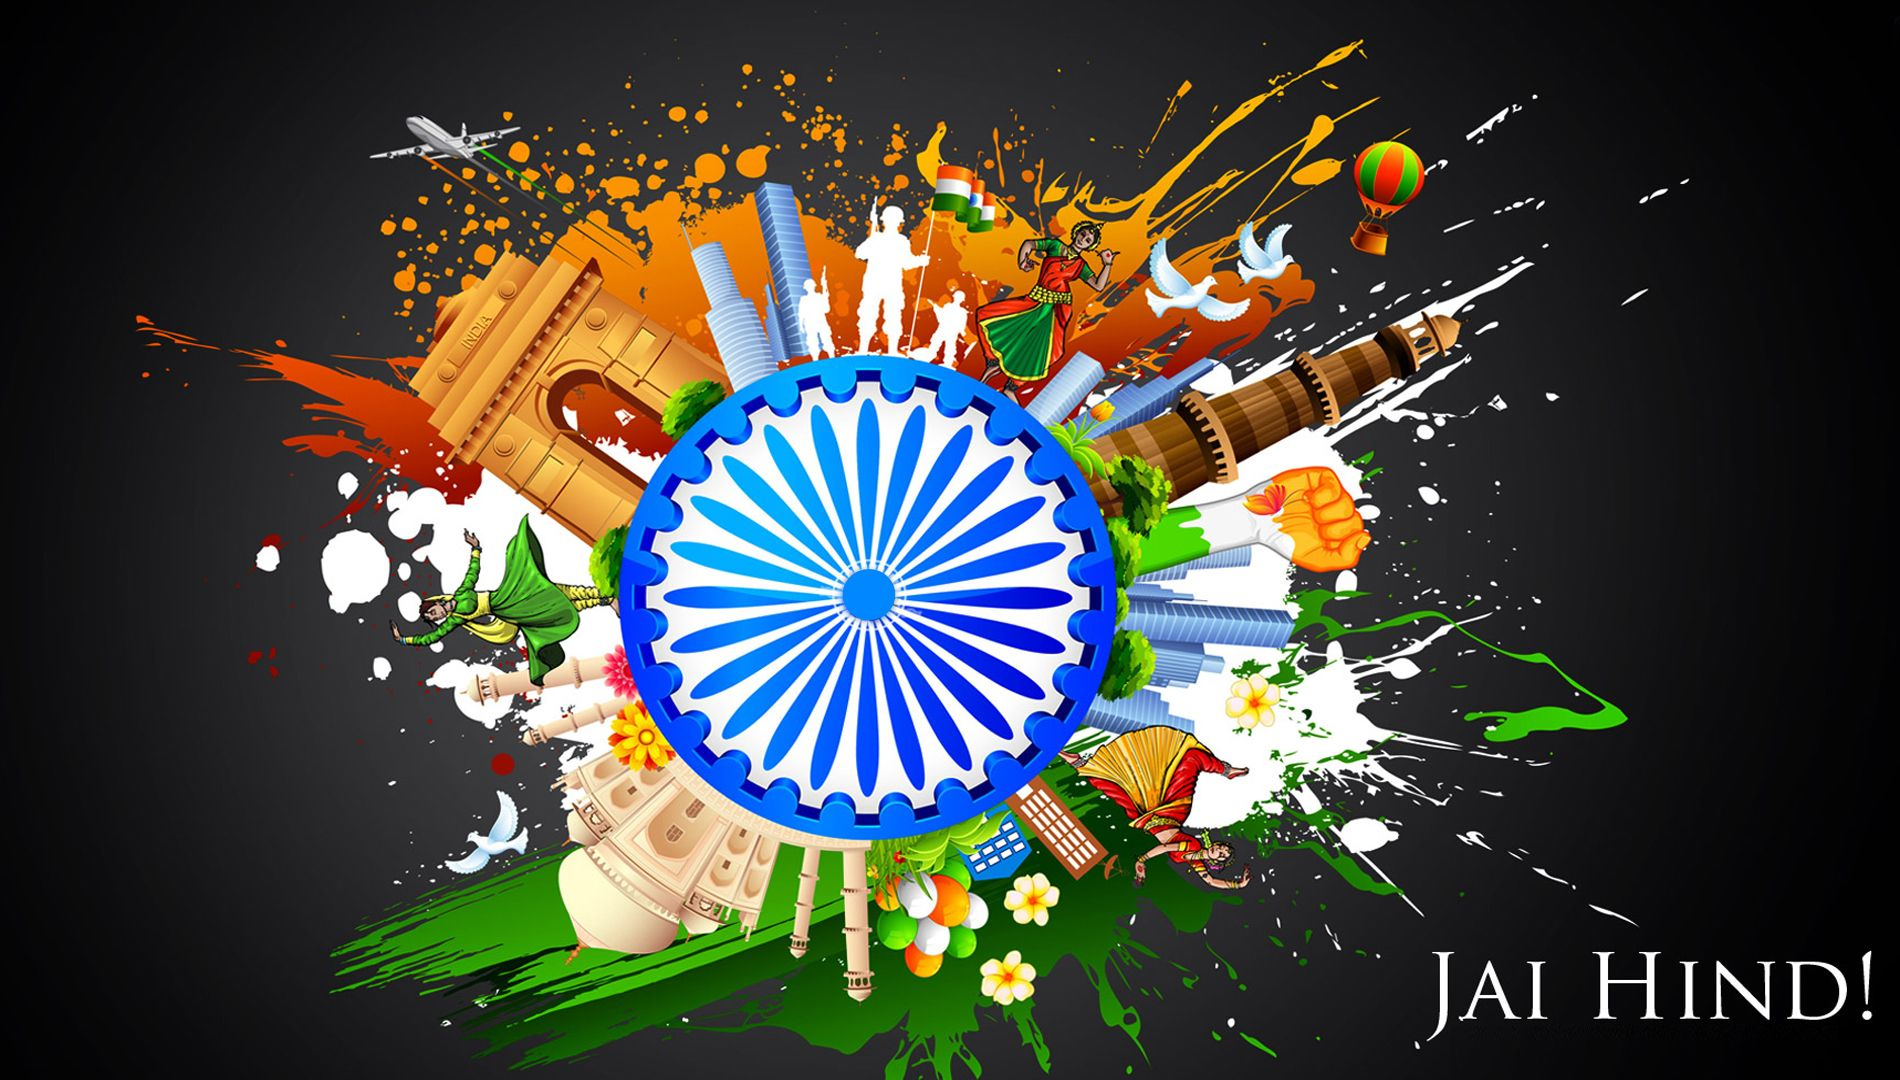 independence day hd n  26 republic day of missile celebration card images happy republic day wishes and greetings quote and